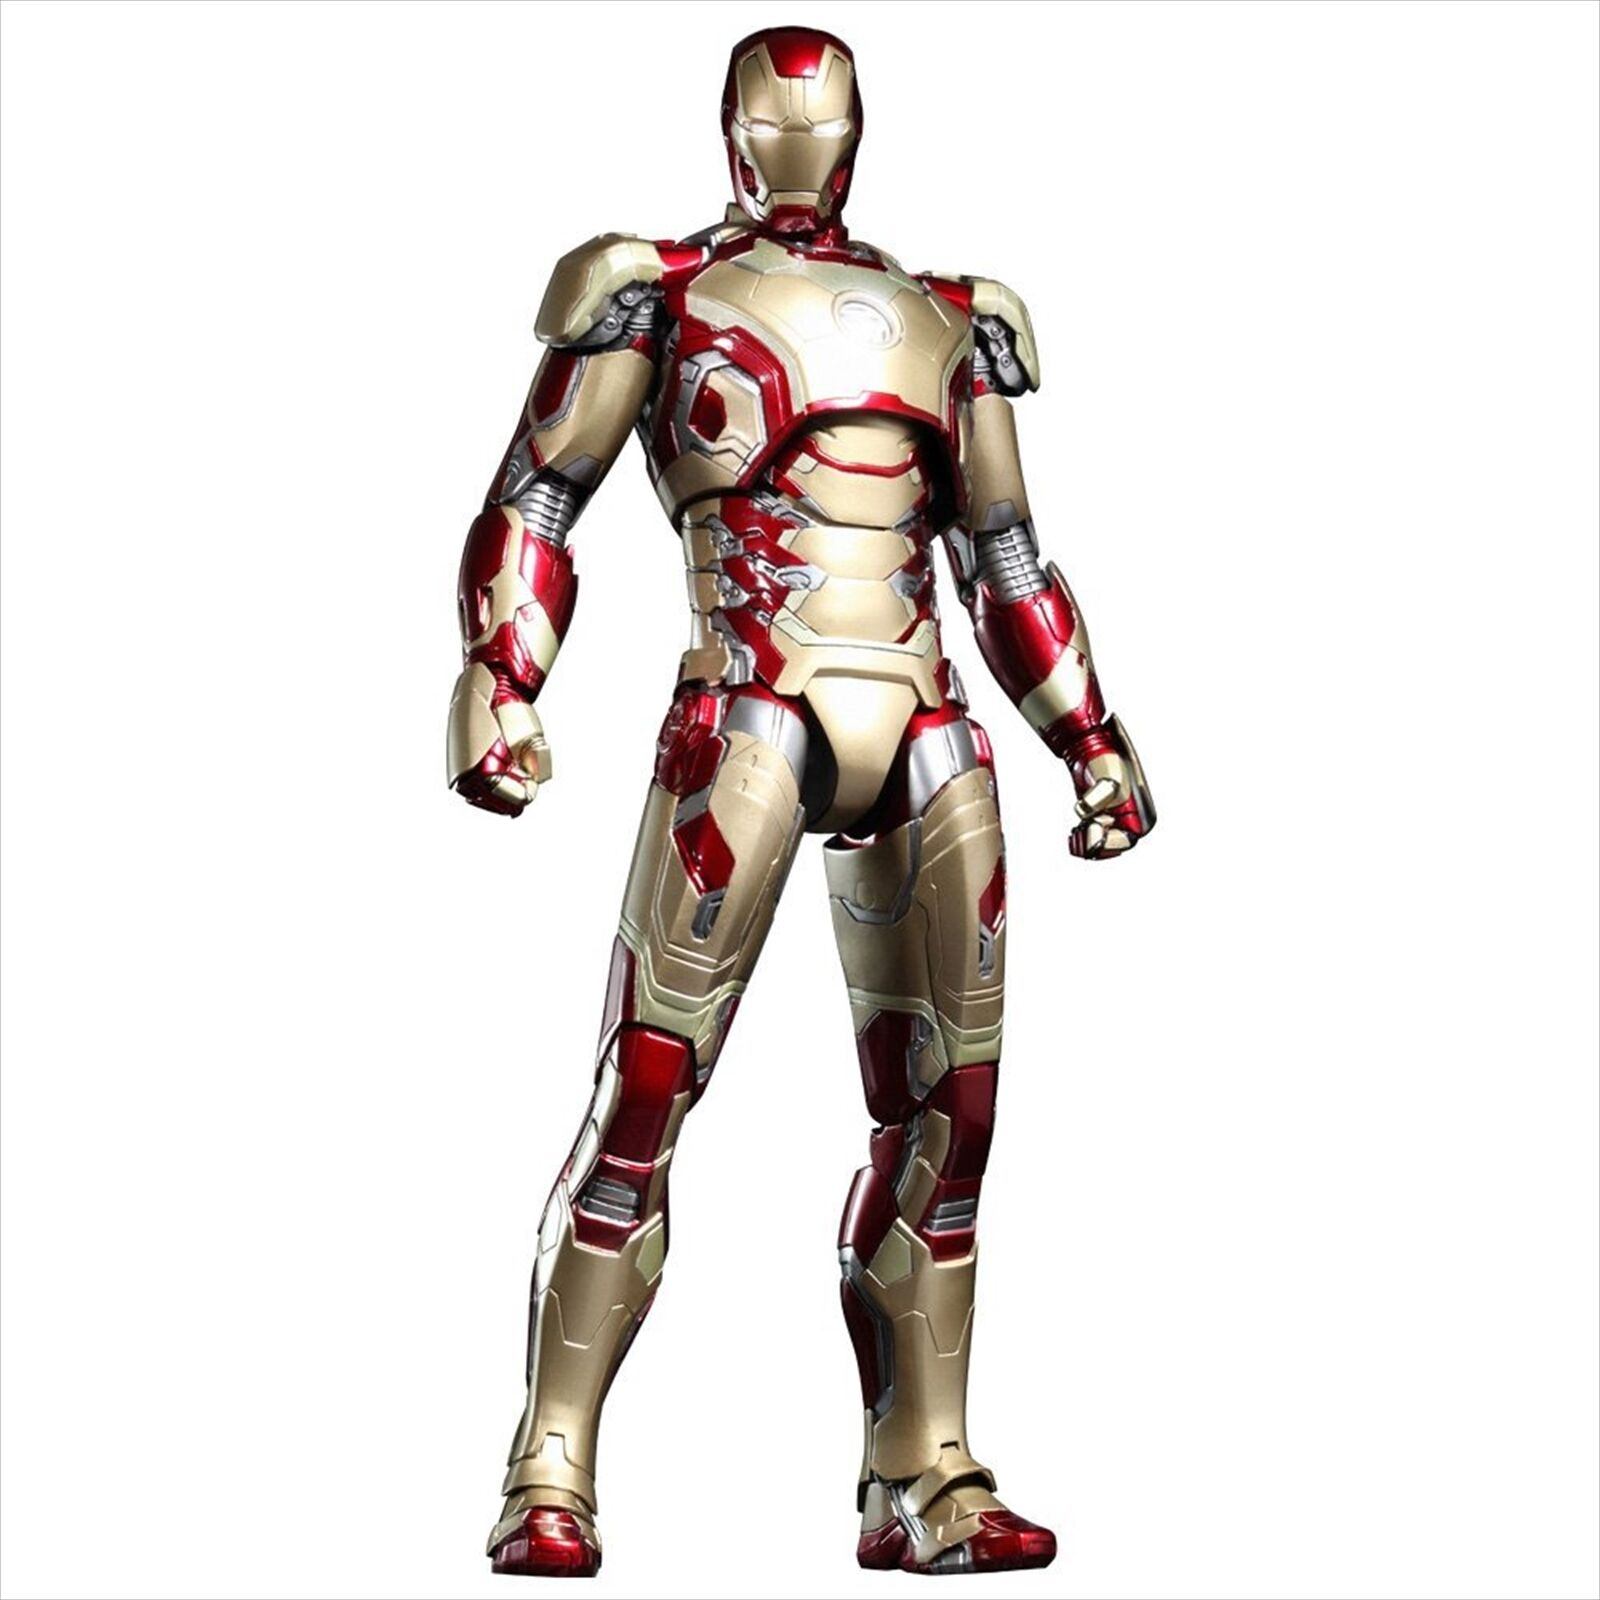 Hot Toys Movie Movie Movie Masterpiece DIECAST Iron Man 3 Mark XLII 1 6 Scale Figure 1380d3